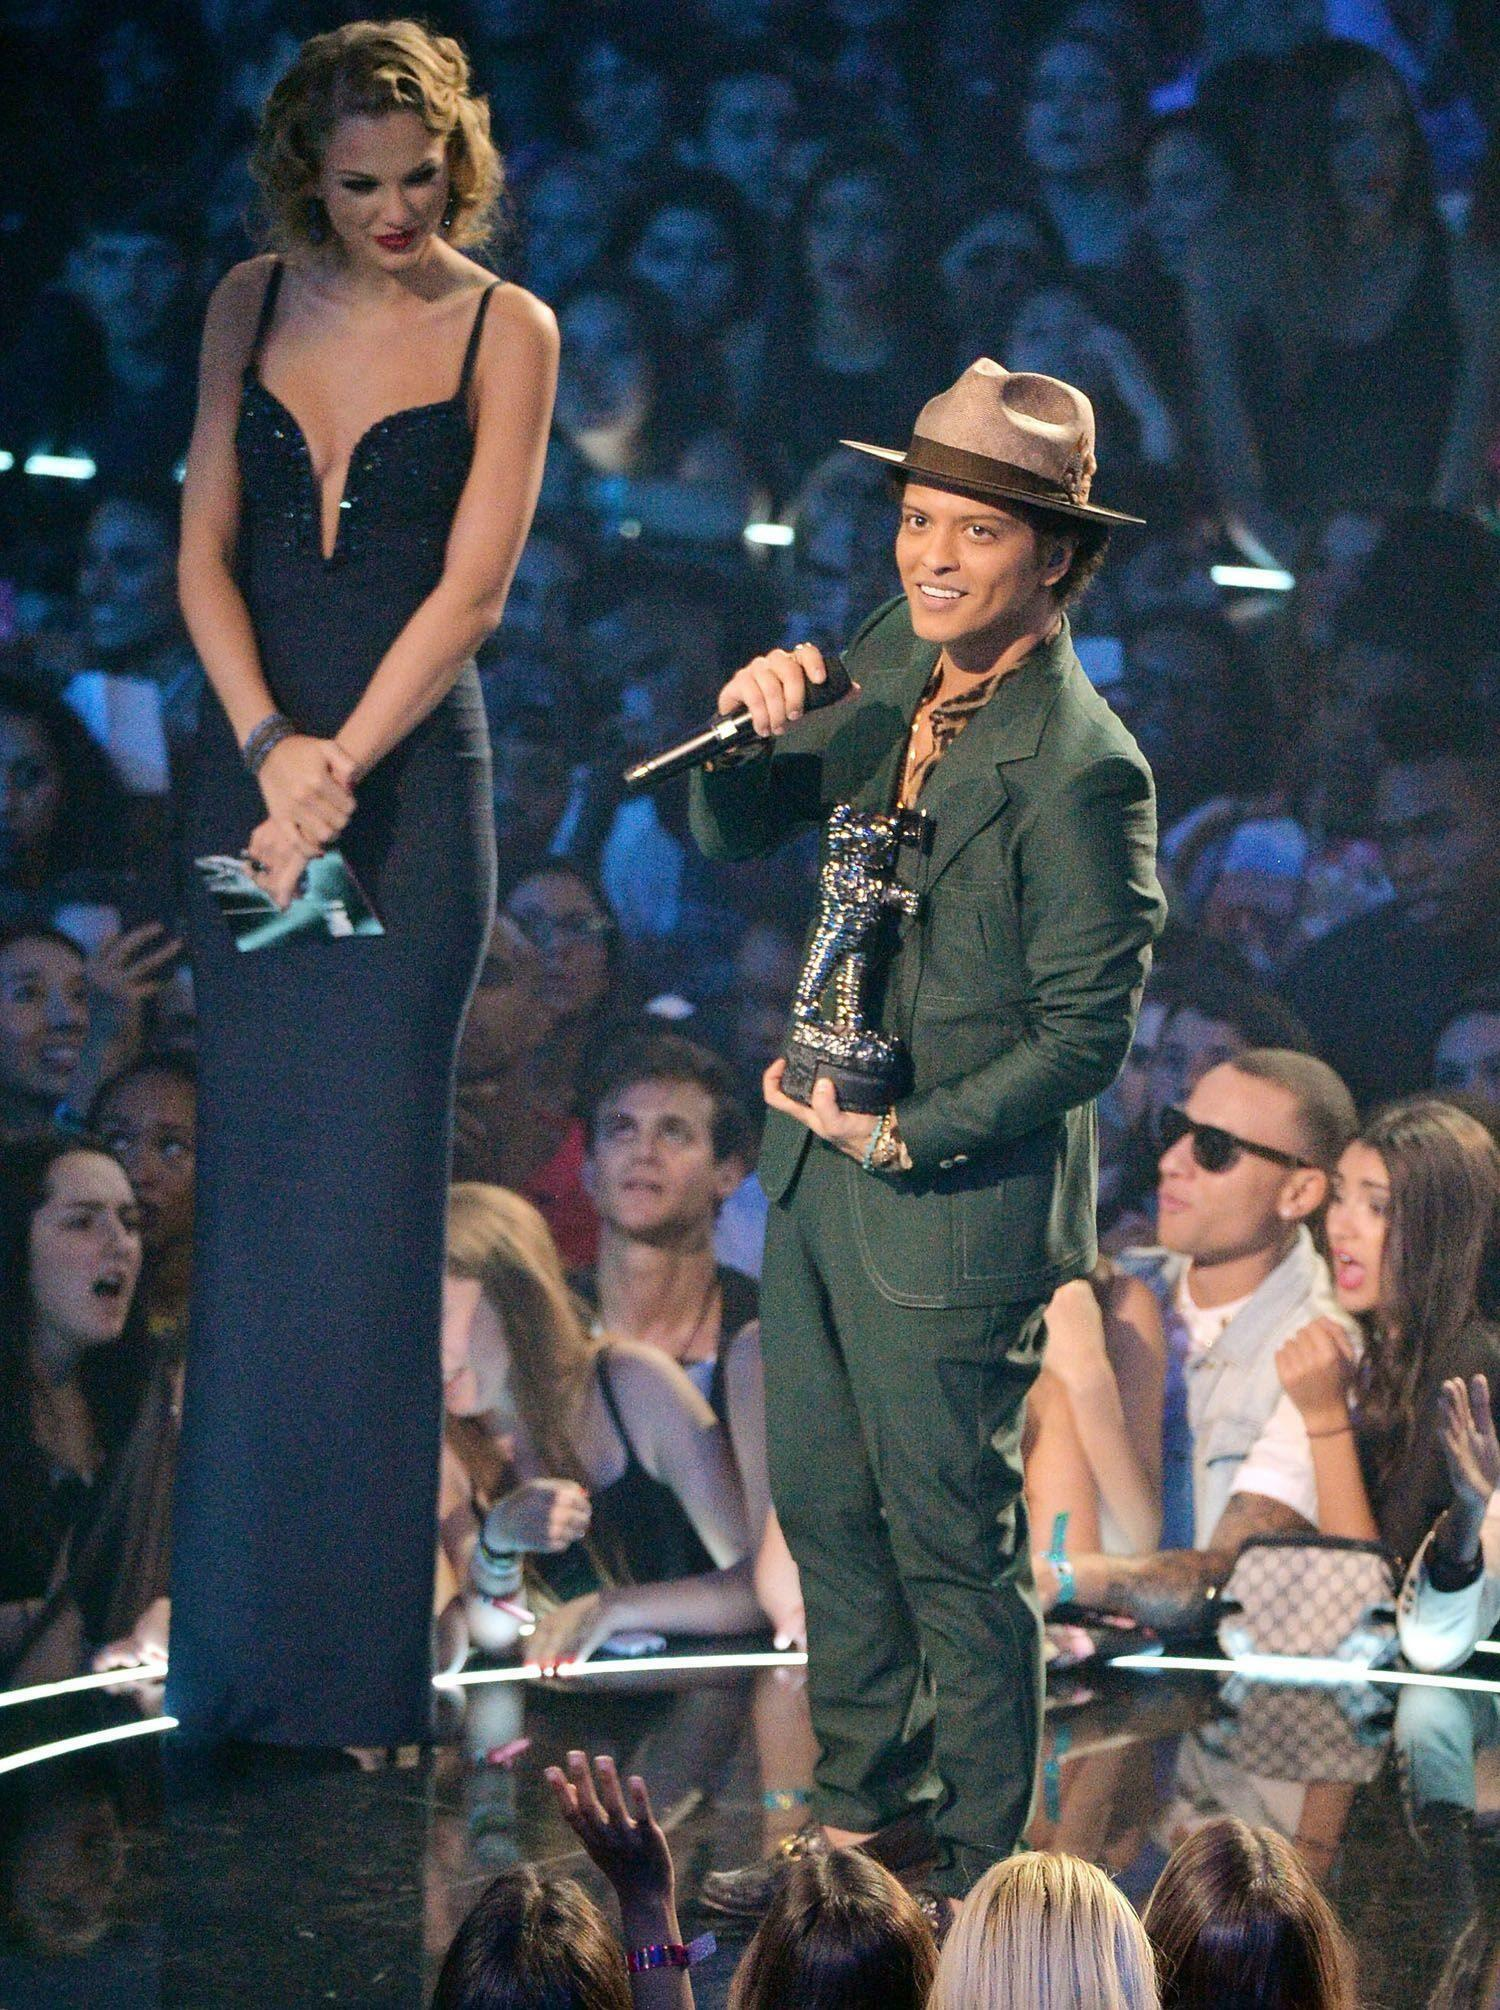 Bruno Mars with Taylor Swift